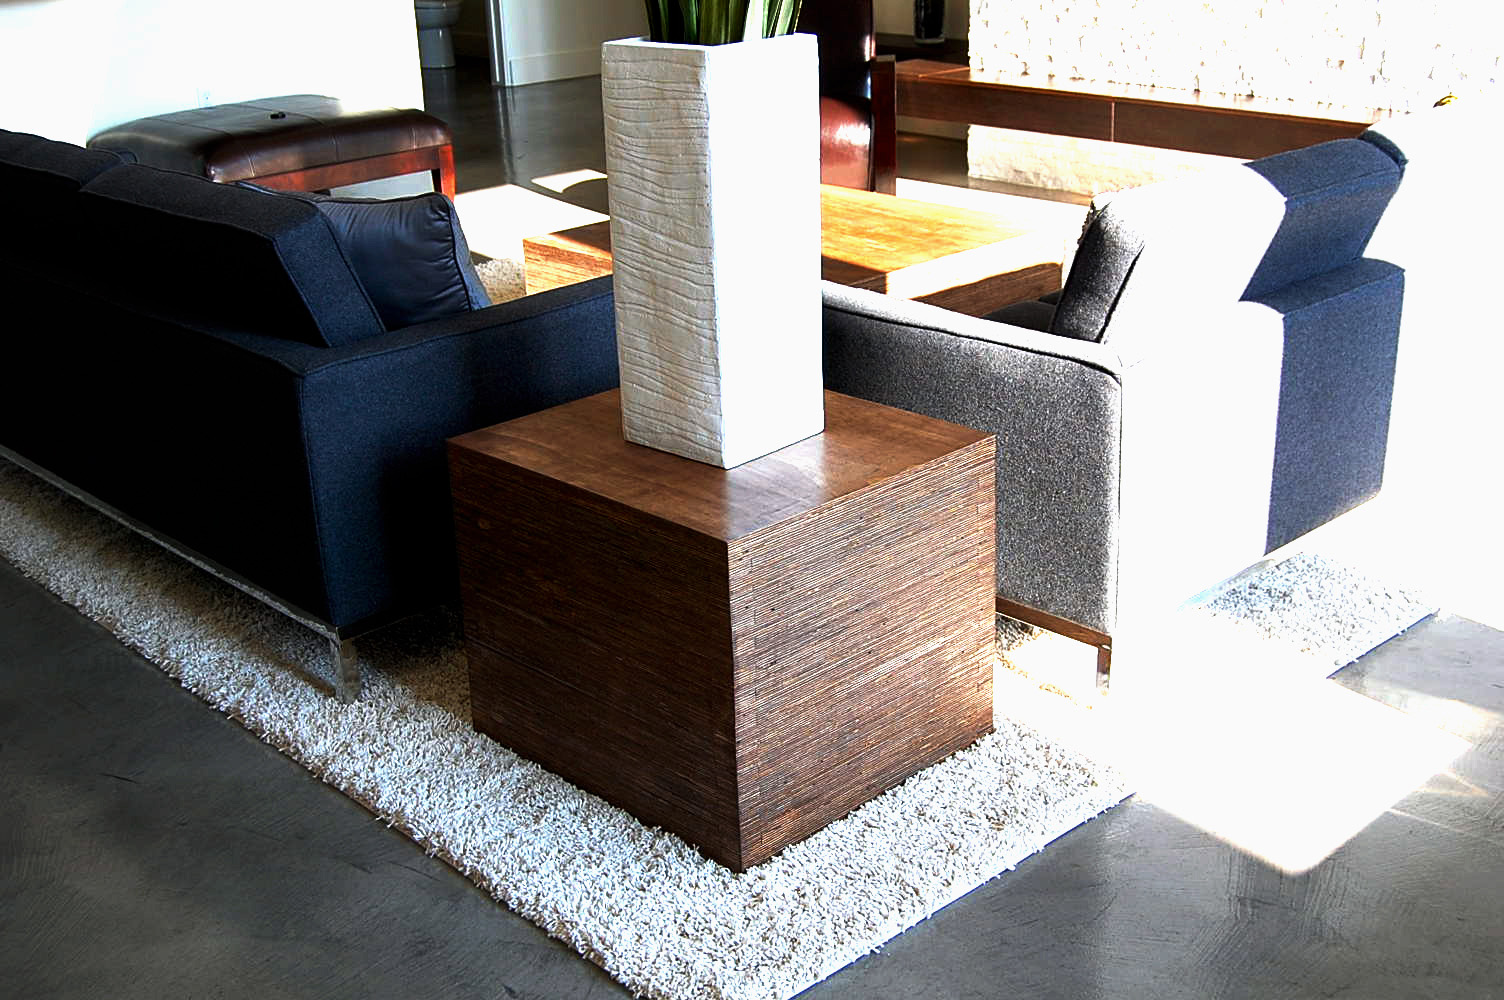 Furniture_Table_MothDesignStudio.jpg